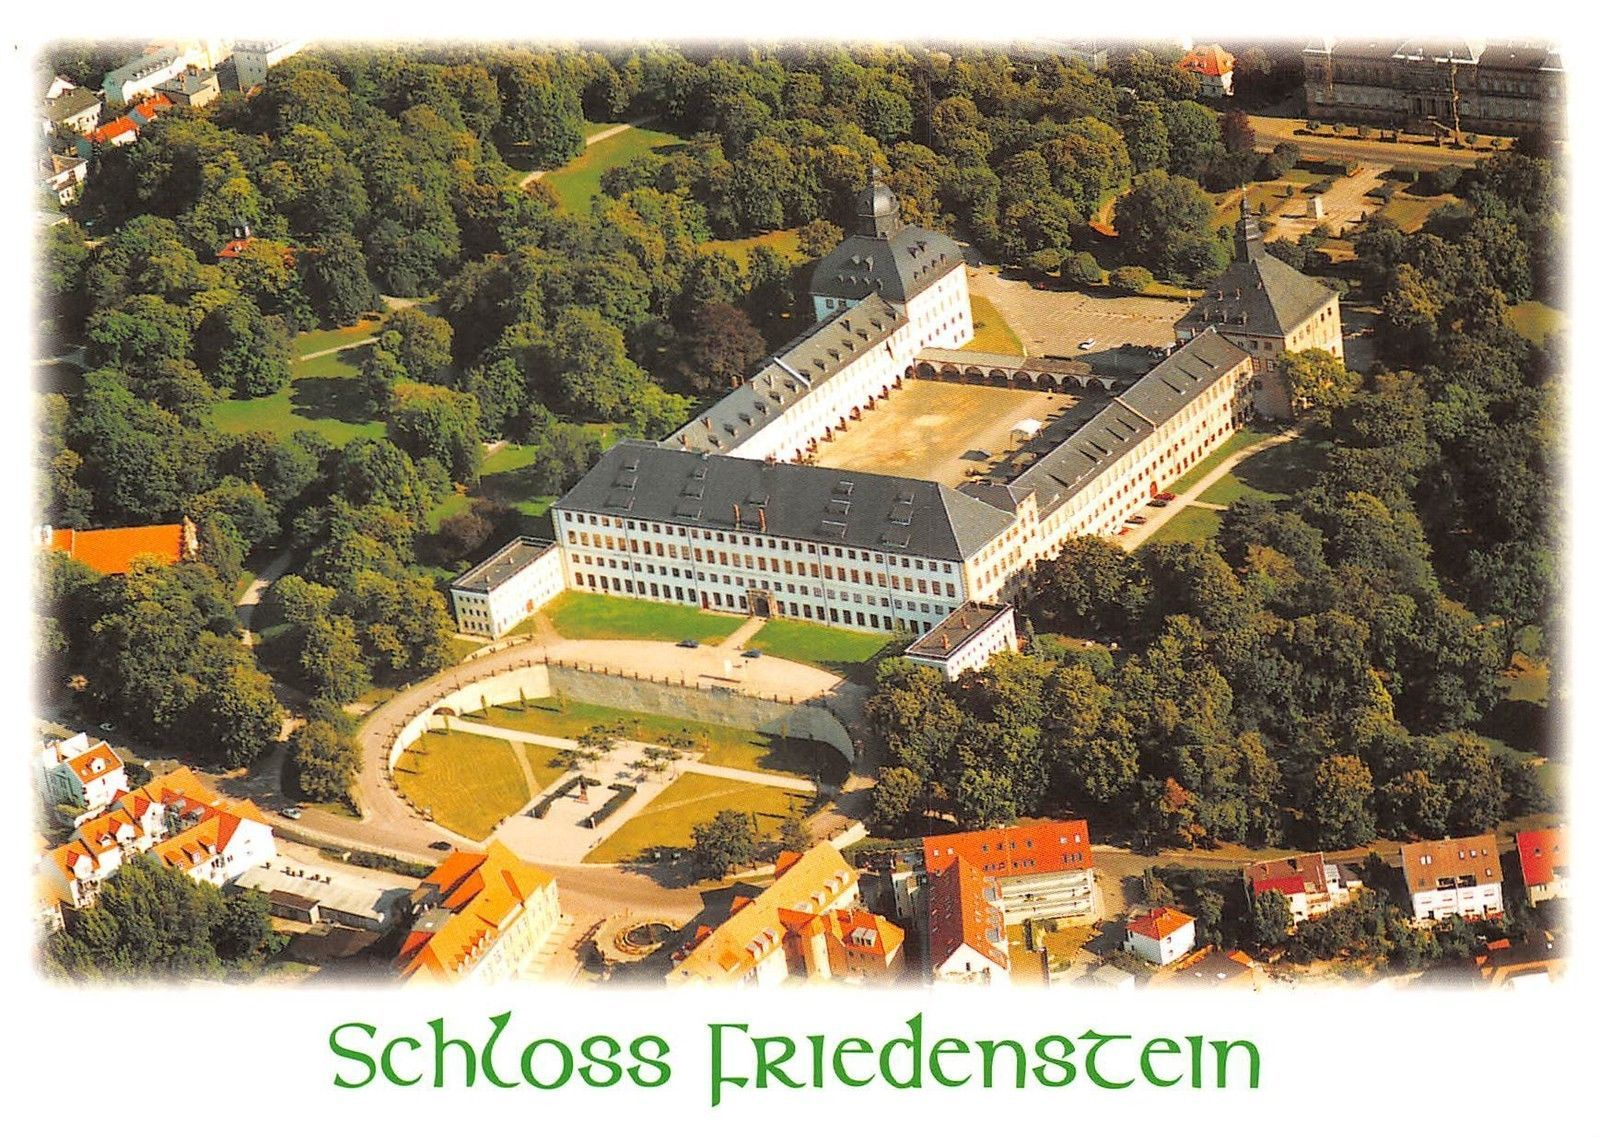 Schloss Friedenstein Air view castle chateau | eBay